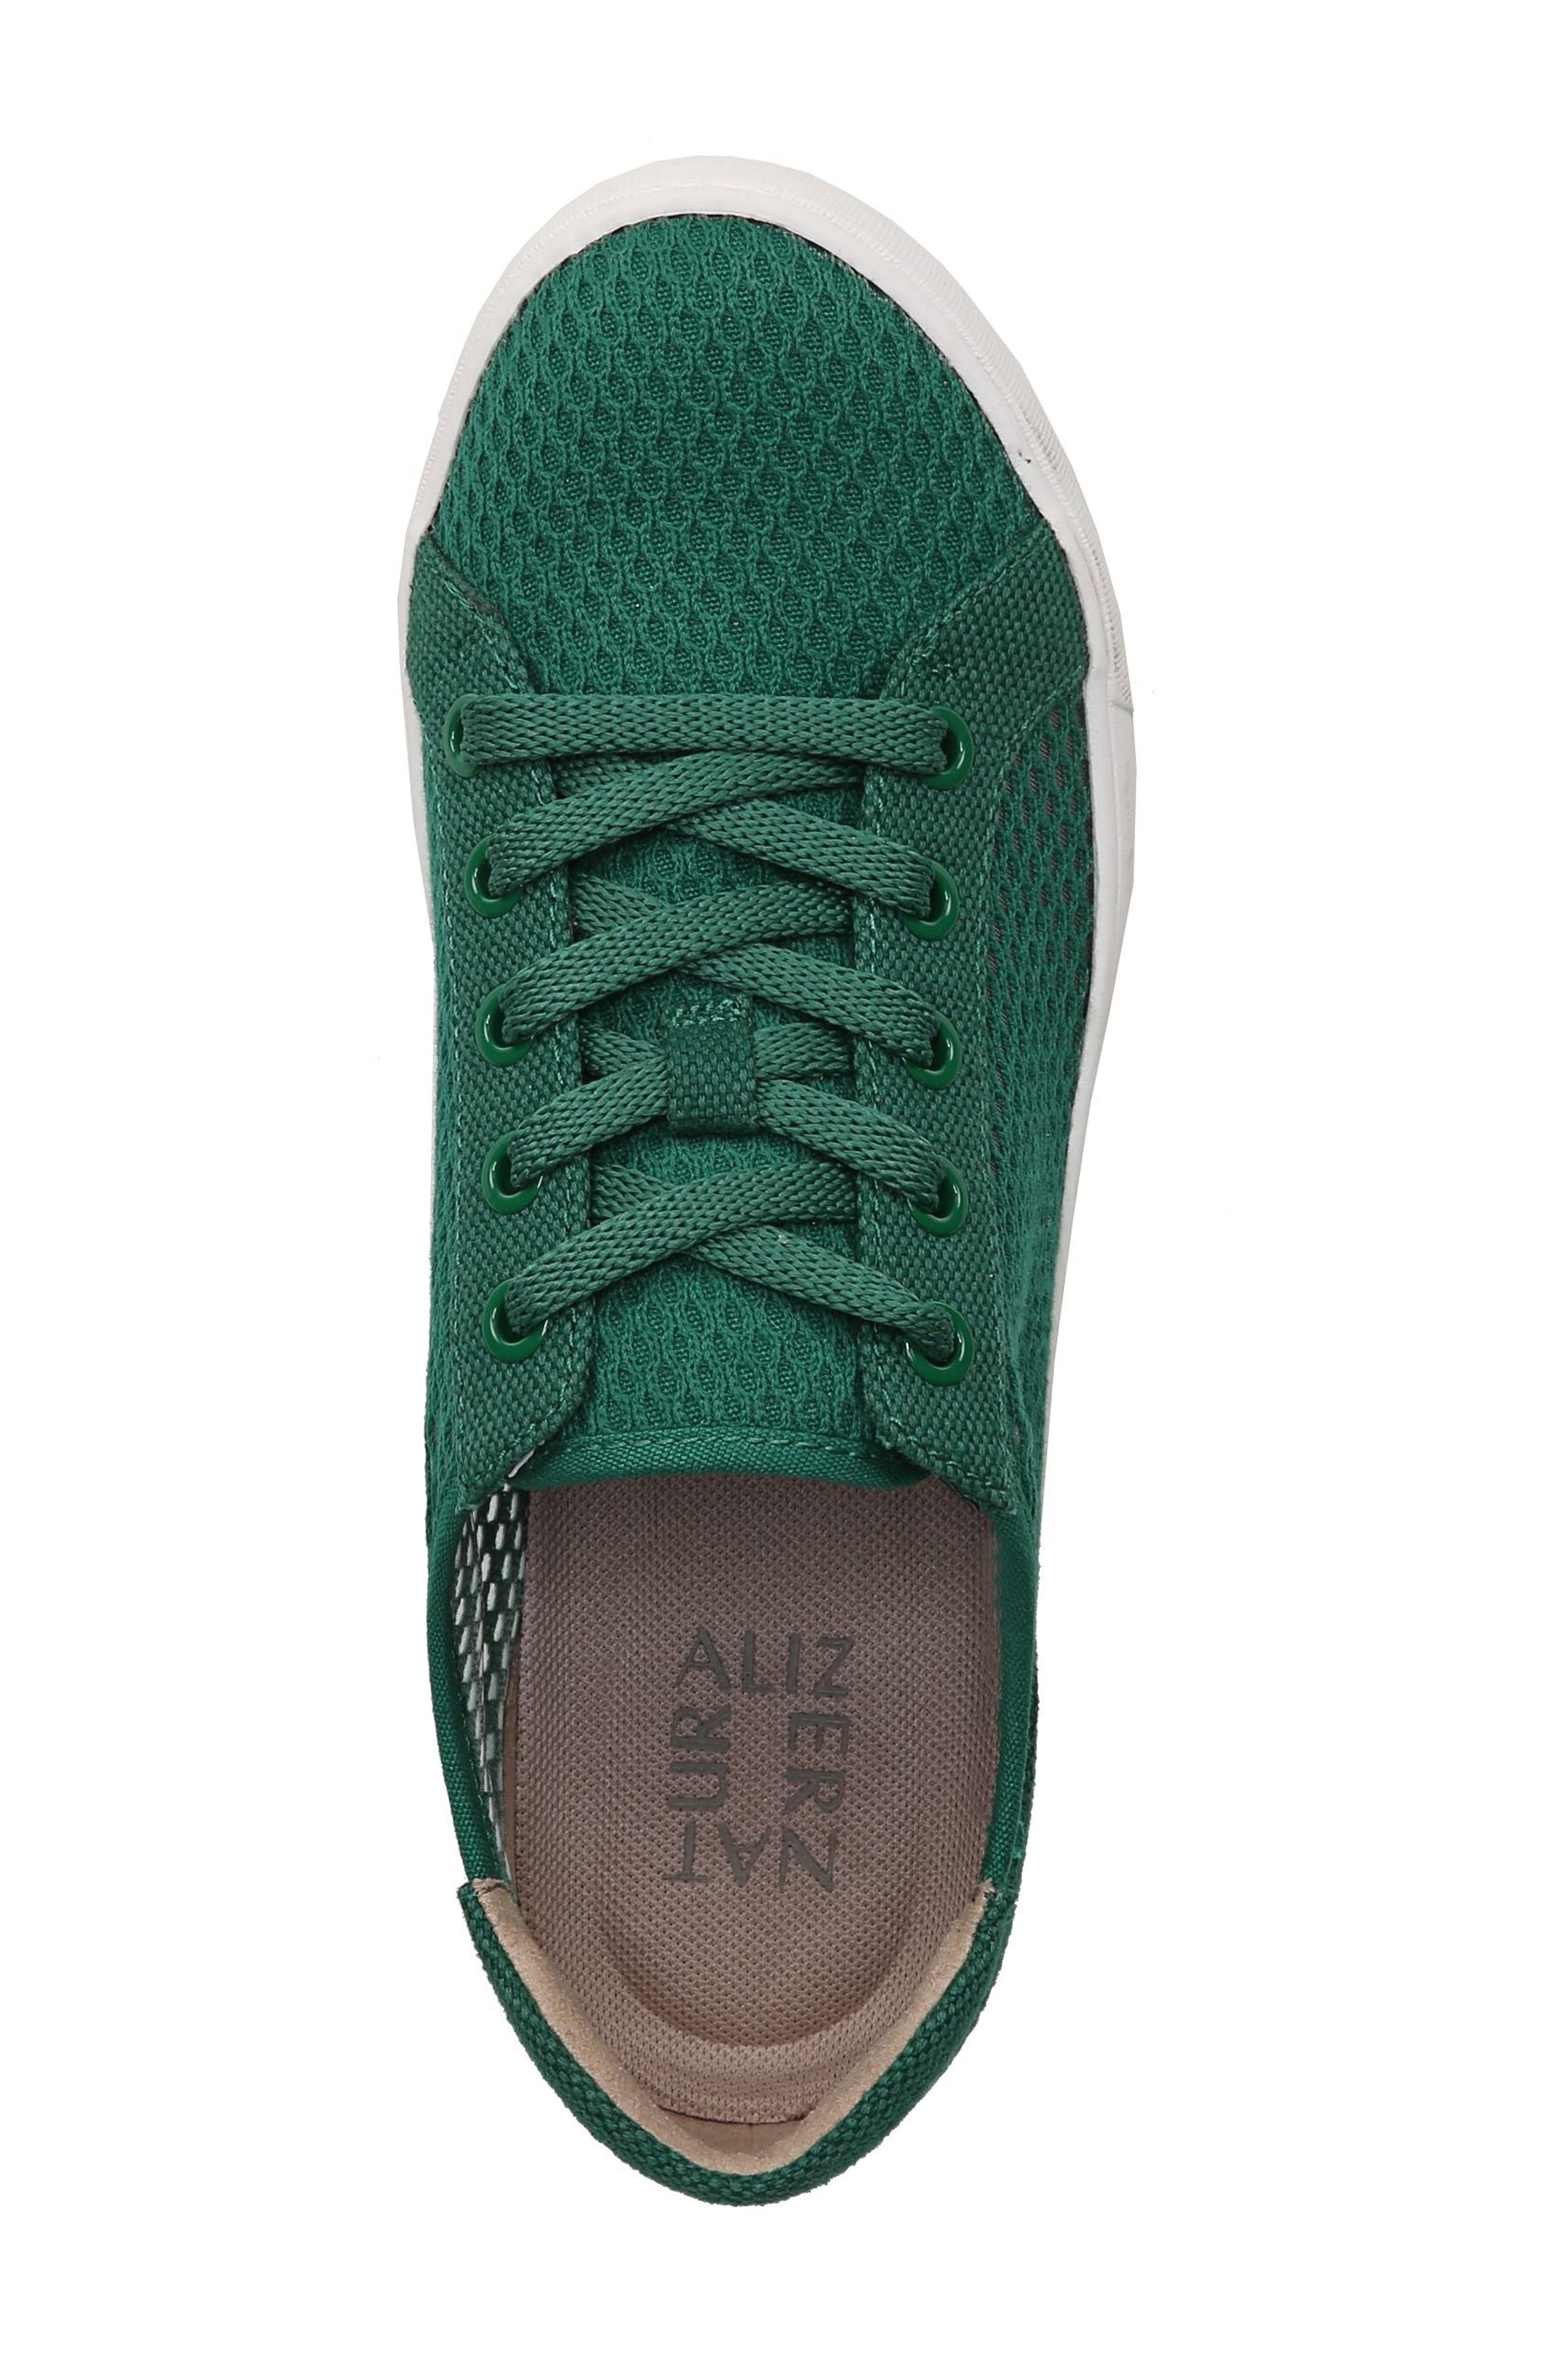 Morrison III Perforated Sneaker,                             Alternate thumbnail 5, color,                             Green Leather